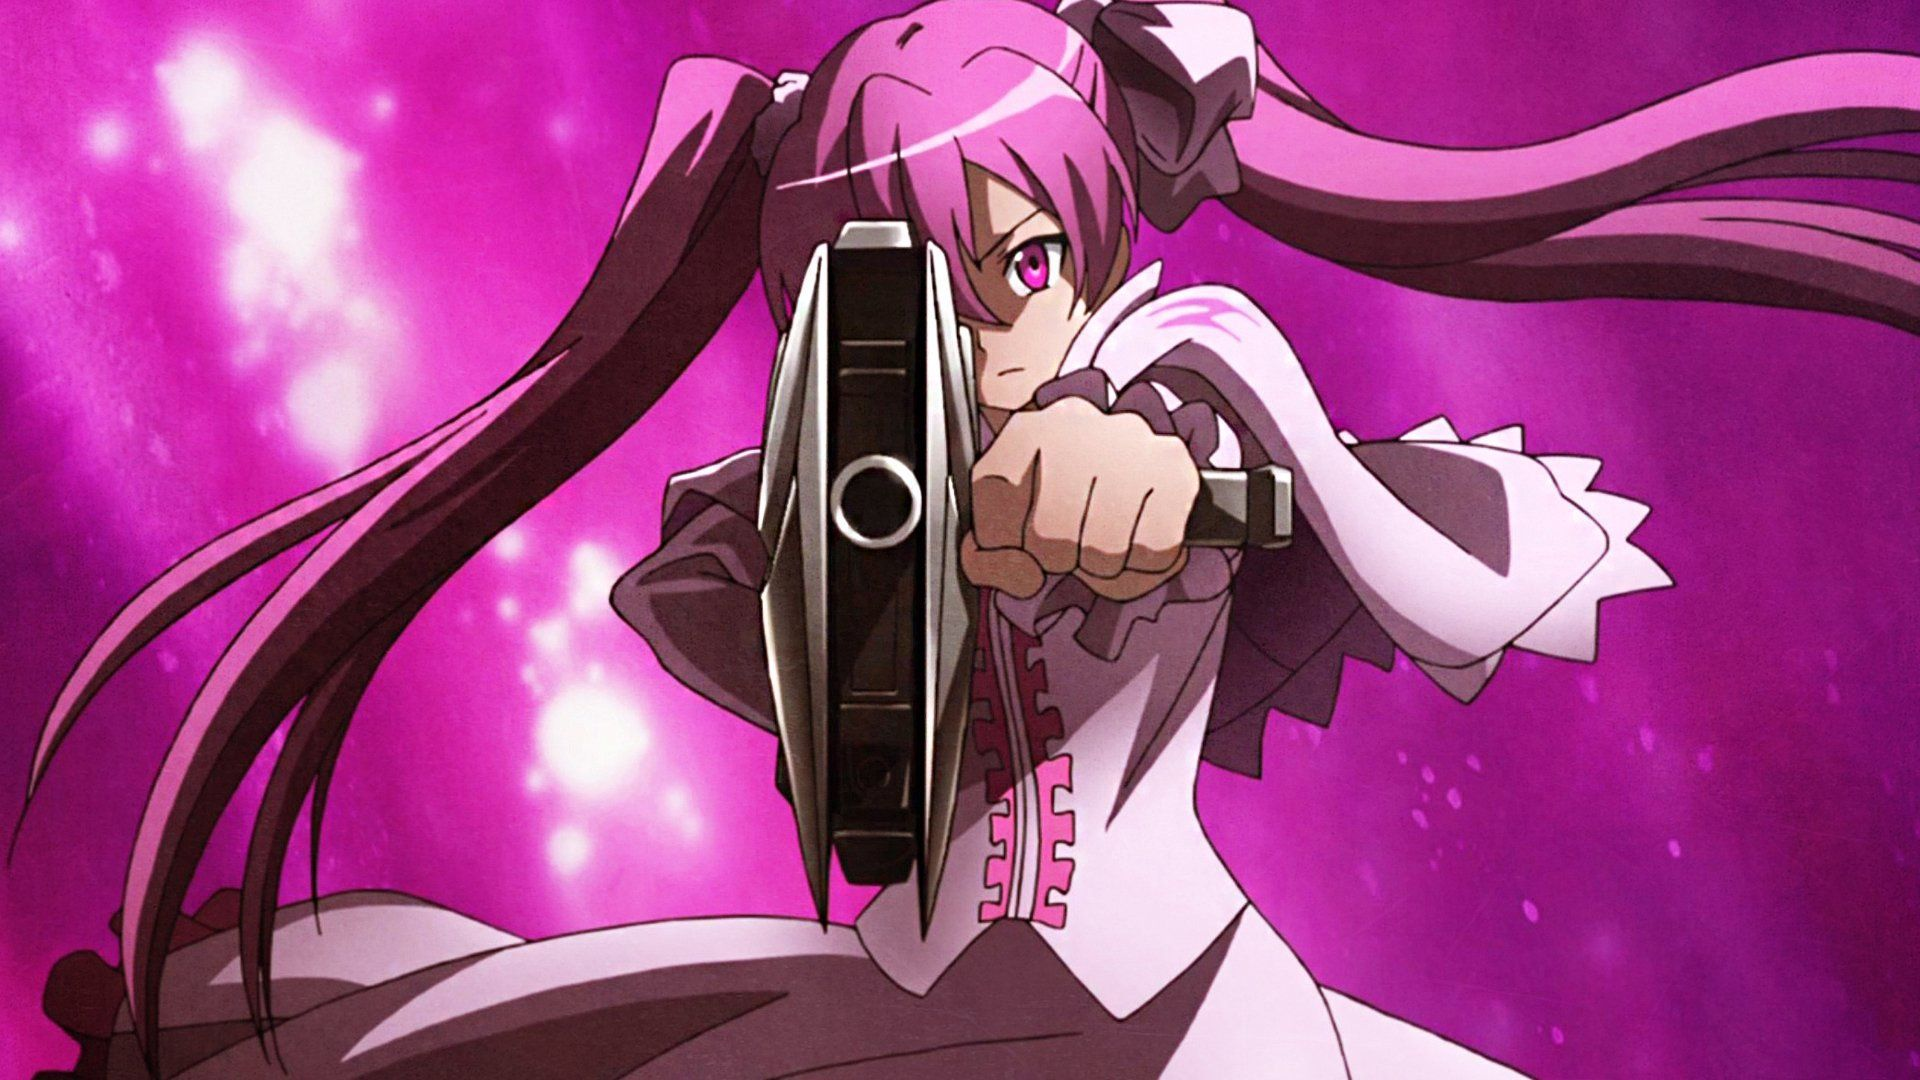 Mine Akame Ga Kill Wallpapers Top Free Mine Akame Ga Kill